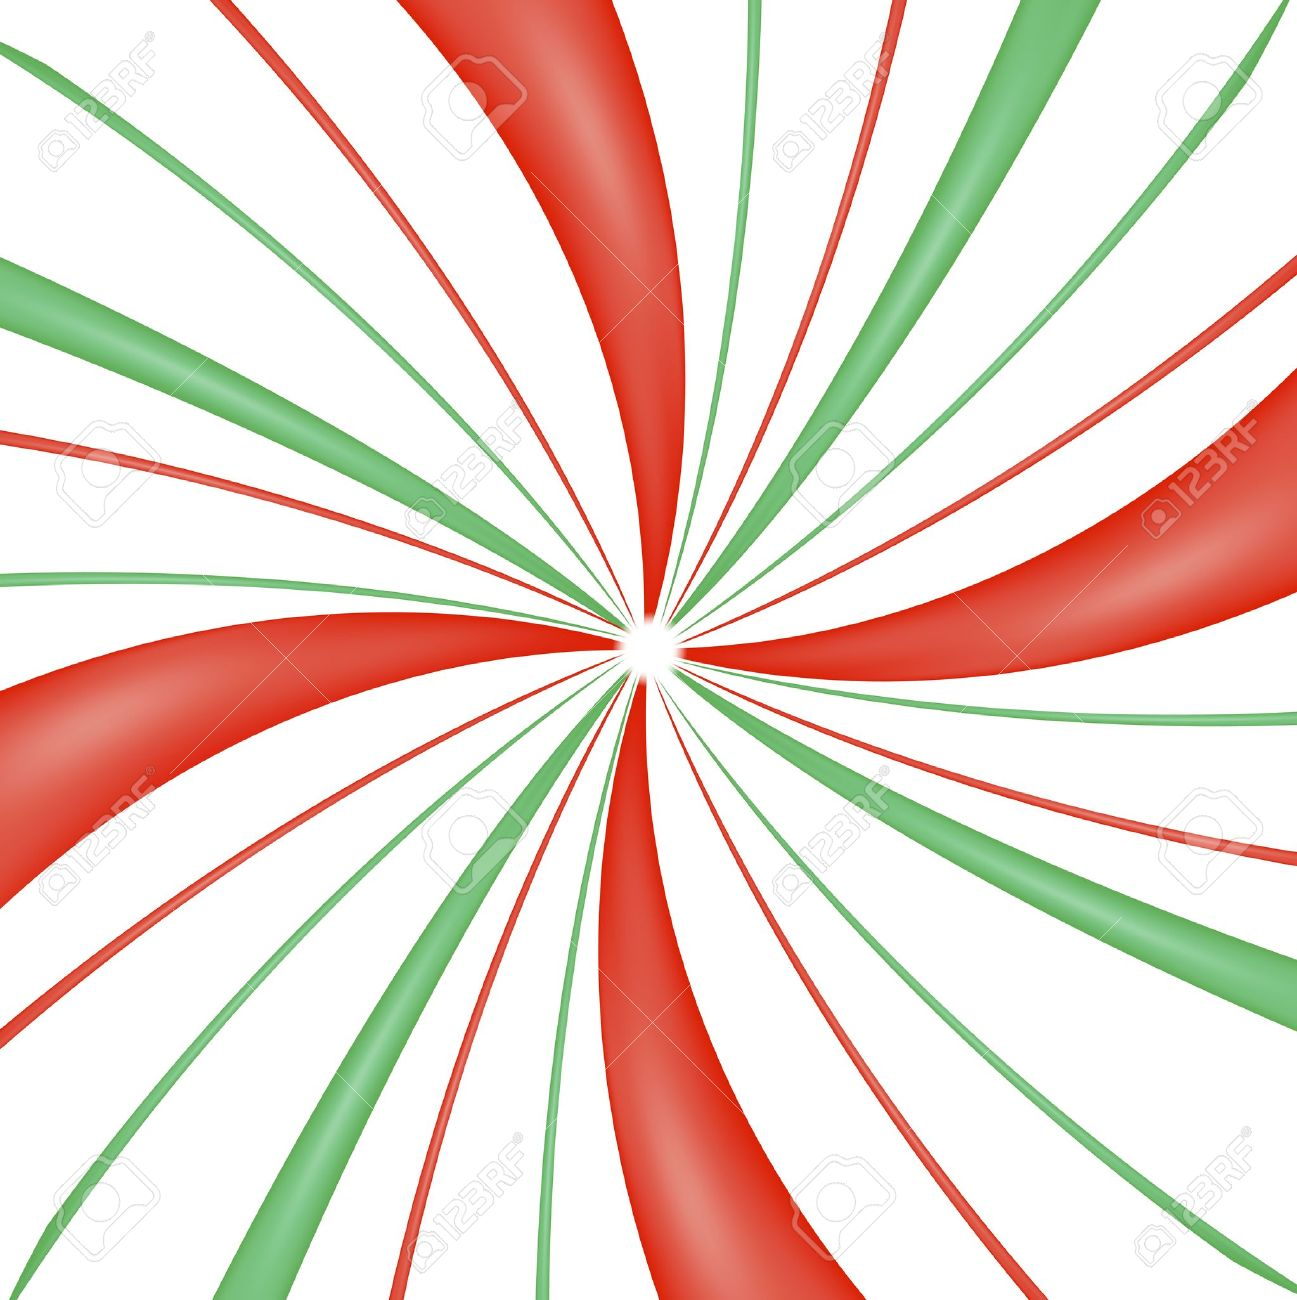 Peppermint Candy Swirl Background Stock Photo